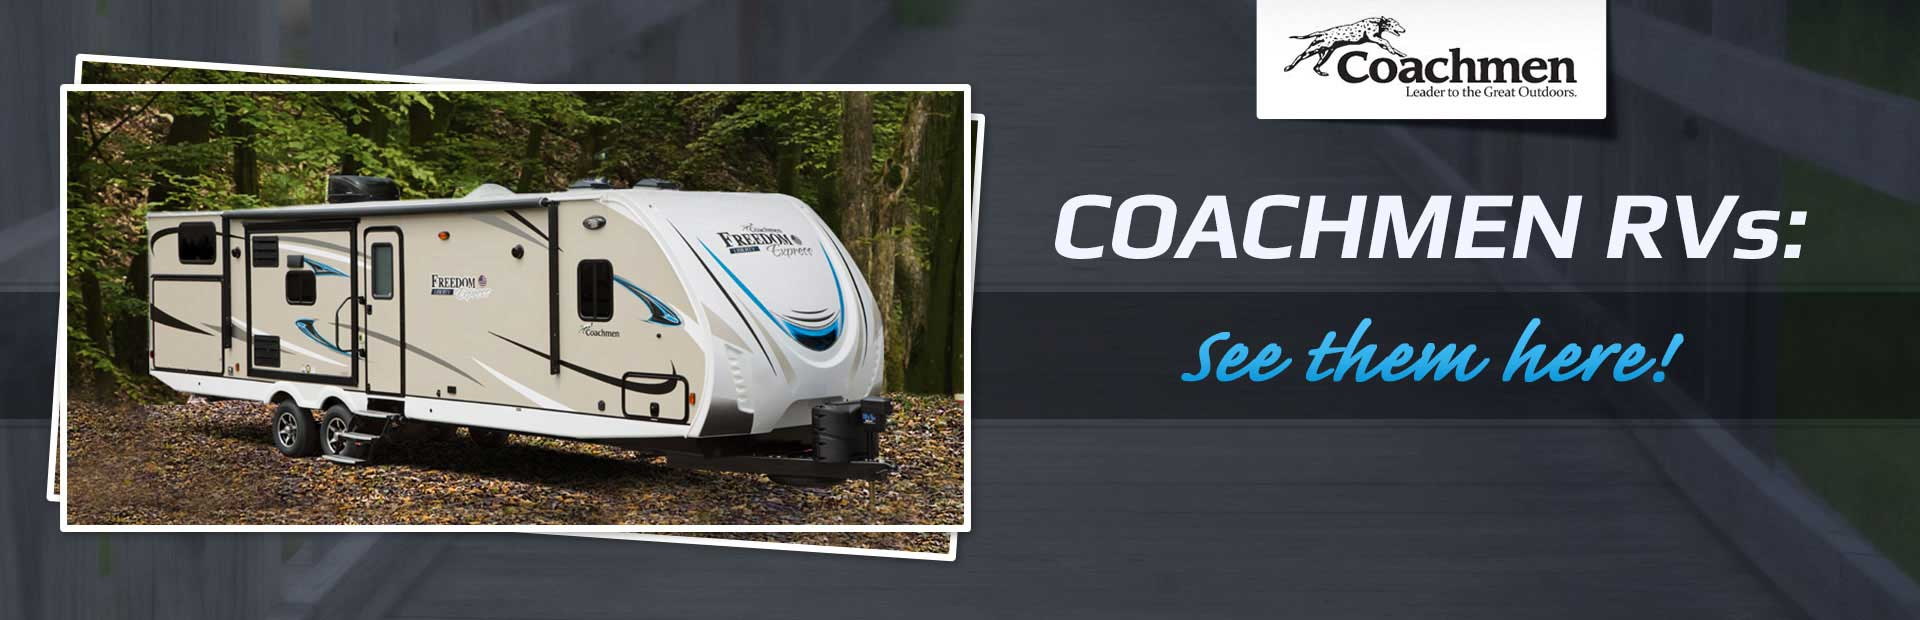 Coachmen RVs: See them here!